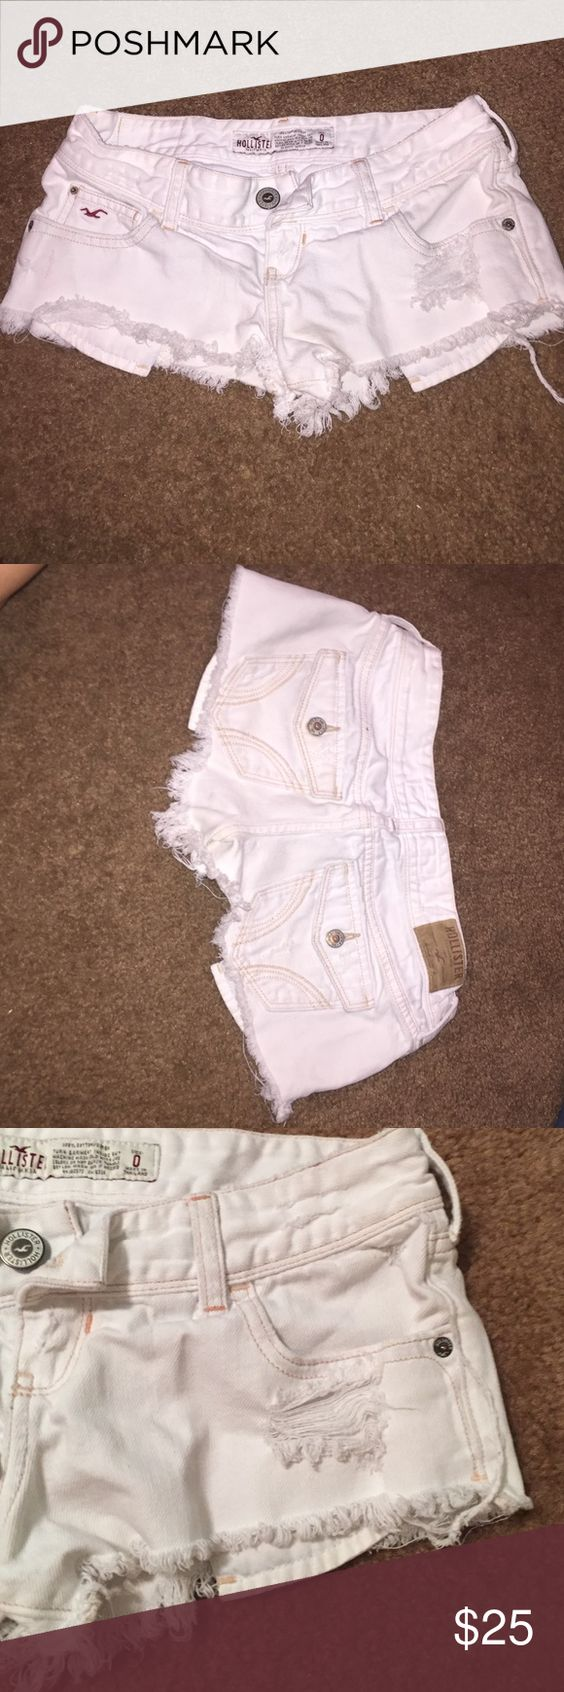 Hollister shorts Hollister white jean short shorts, size 0. Intentional rips and frays. Lightly worn. No stains. Hollister Shorts Jean Shorts